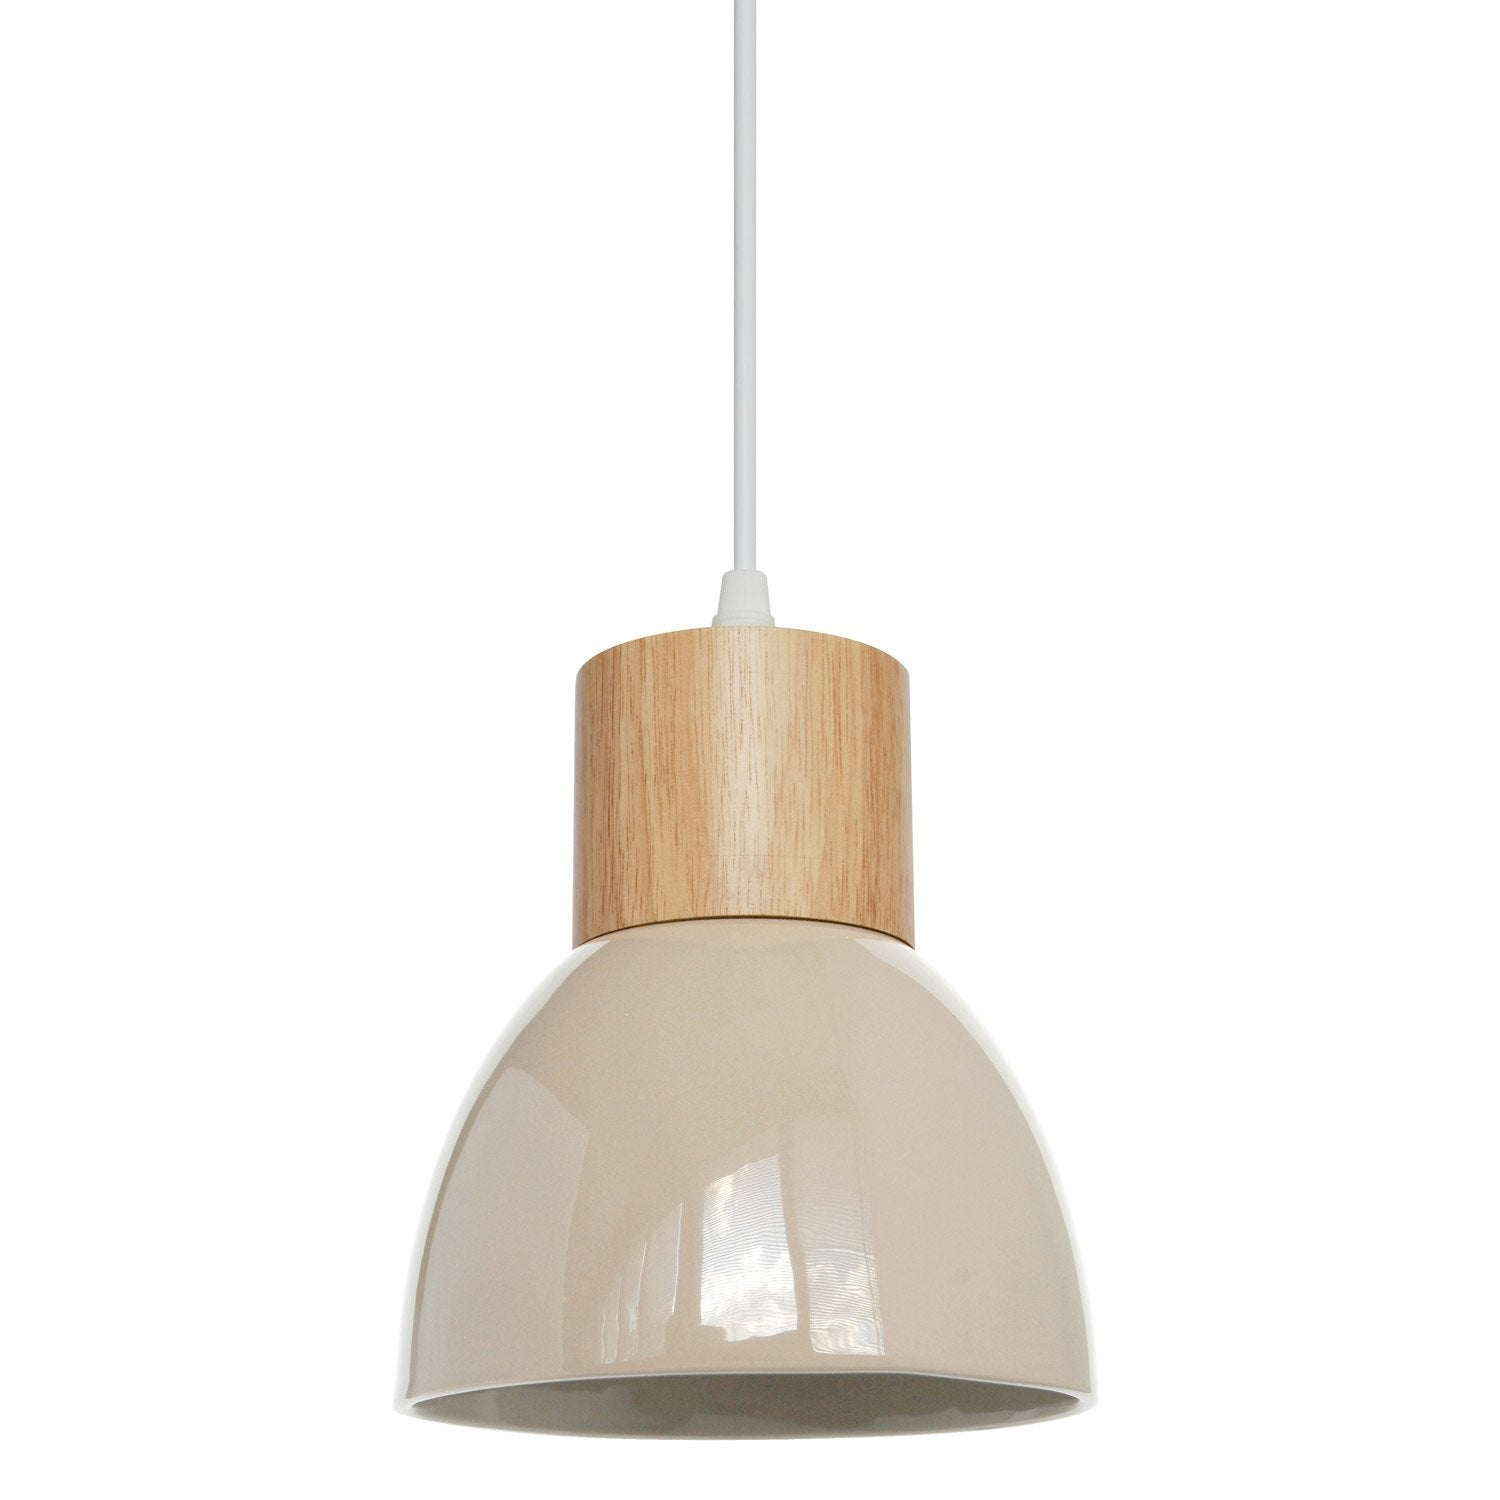 Suspension, e14 design Wilma céramique écru 1 x 40 W SEYNAVE